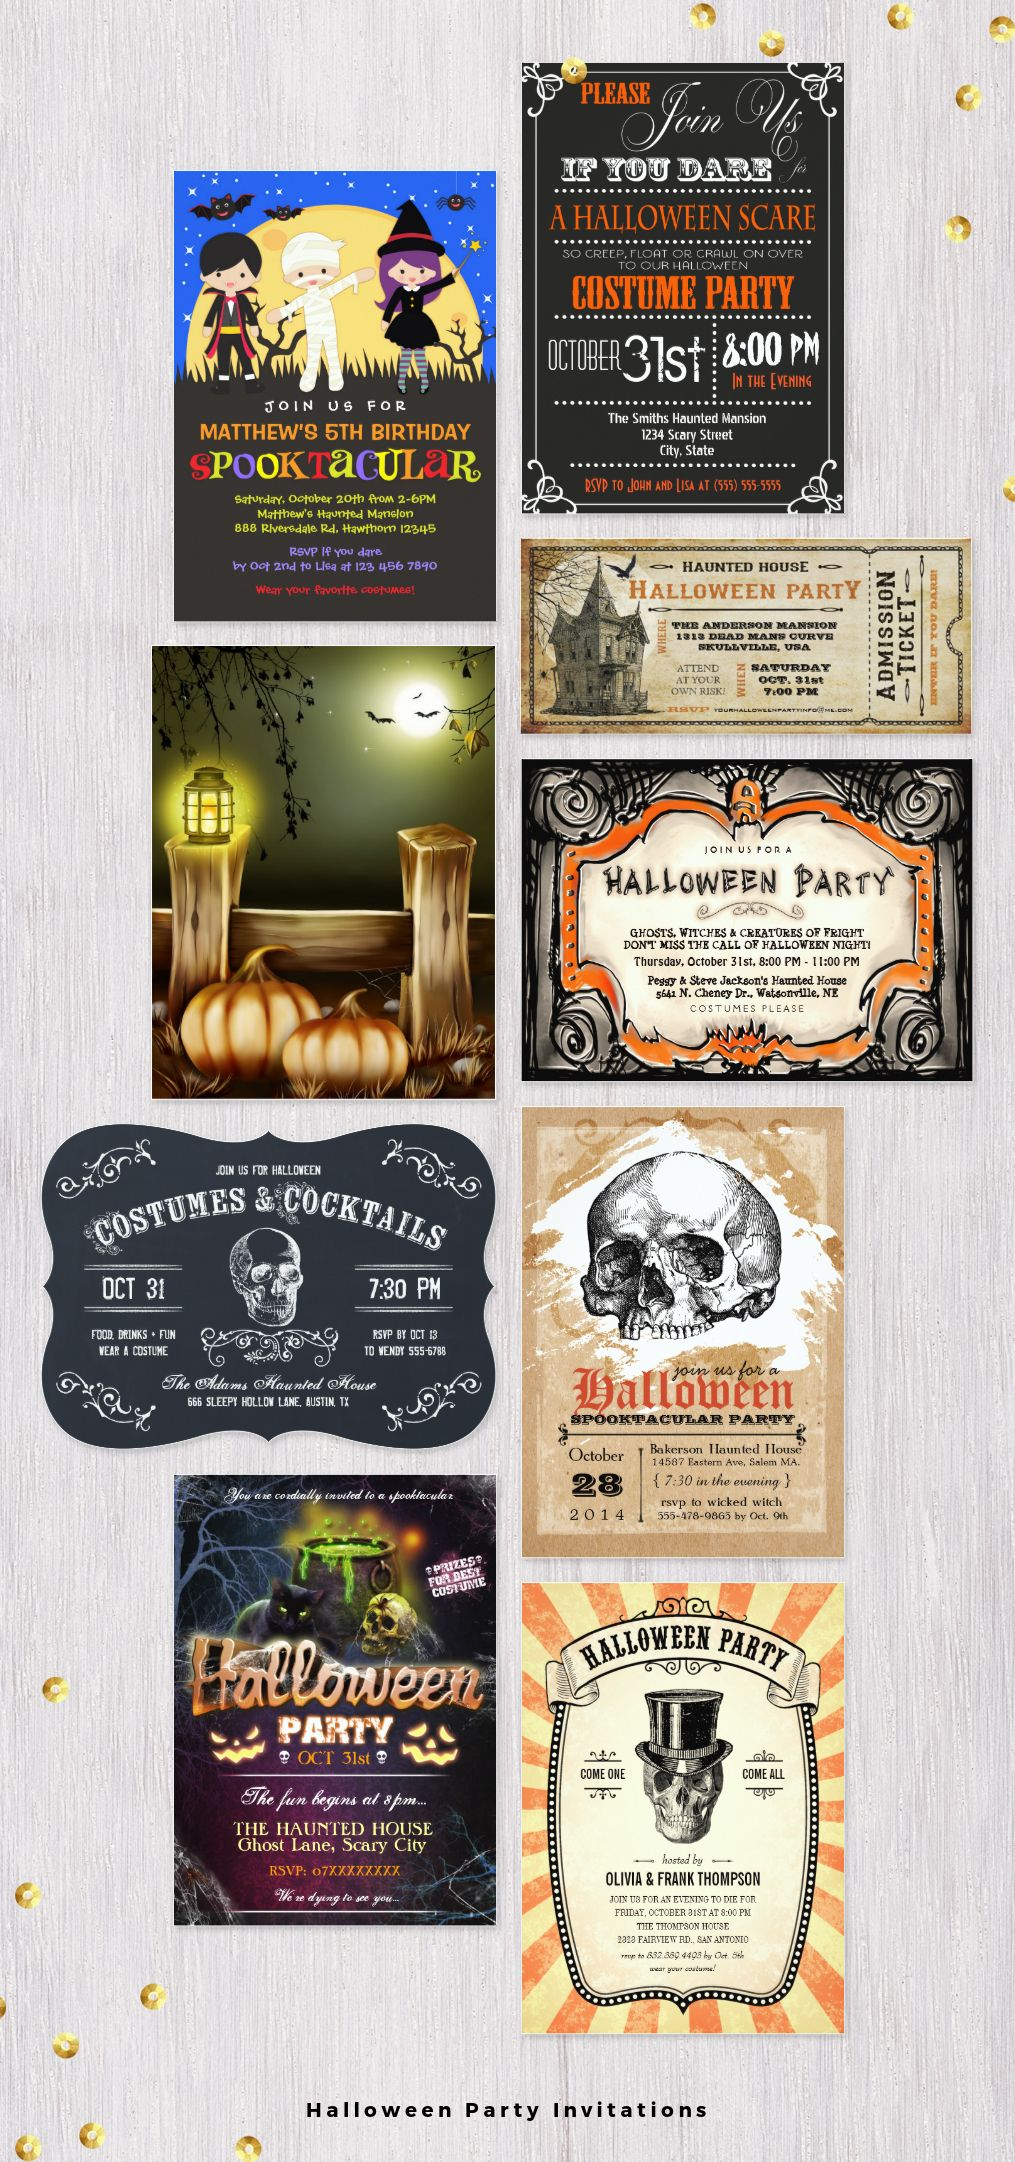 Halloween Party Invitations For Kids And Adults